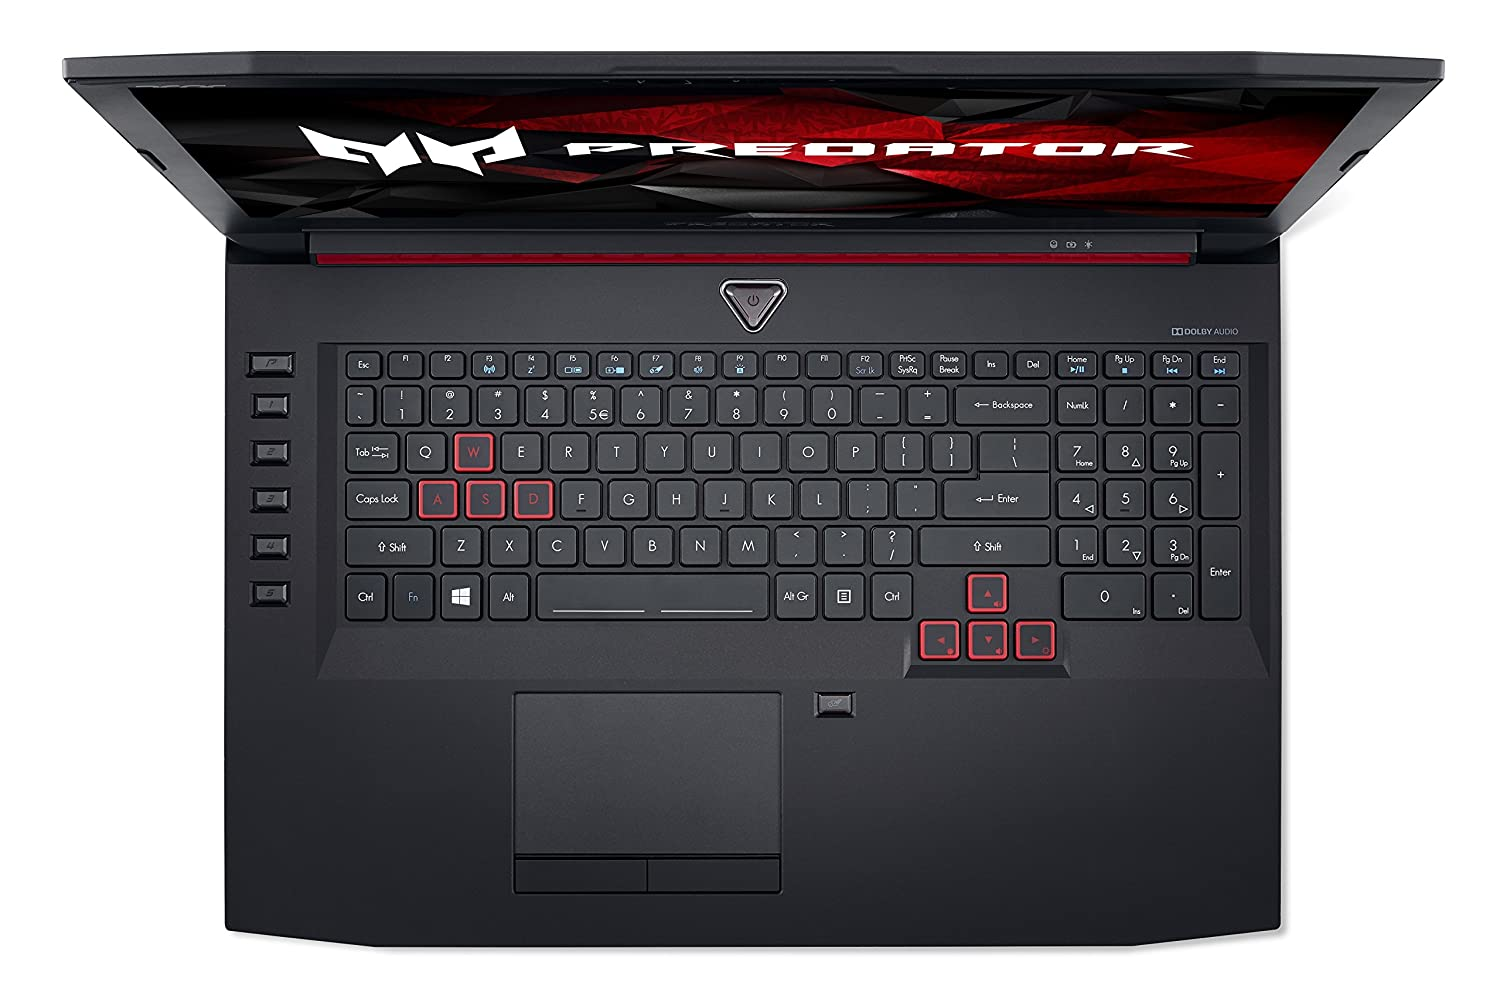 Acer Predator 15 G9-591-713C Gaming Notebook im Test